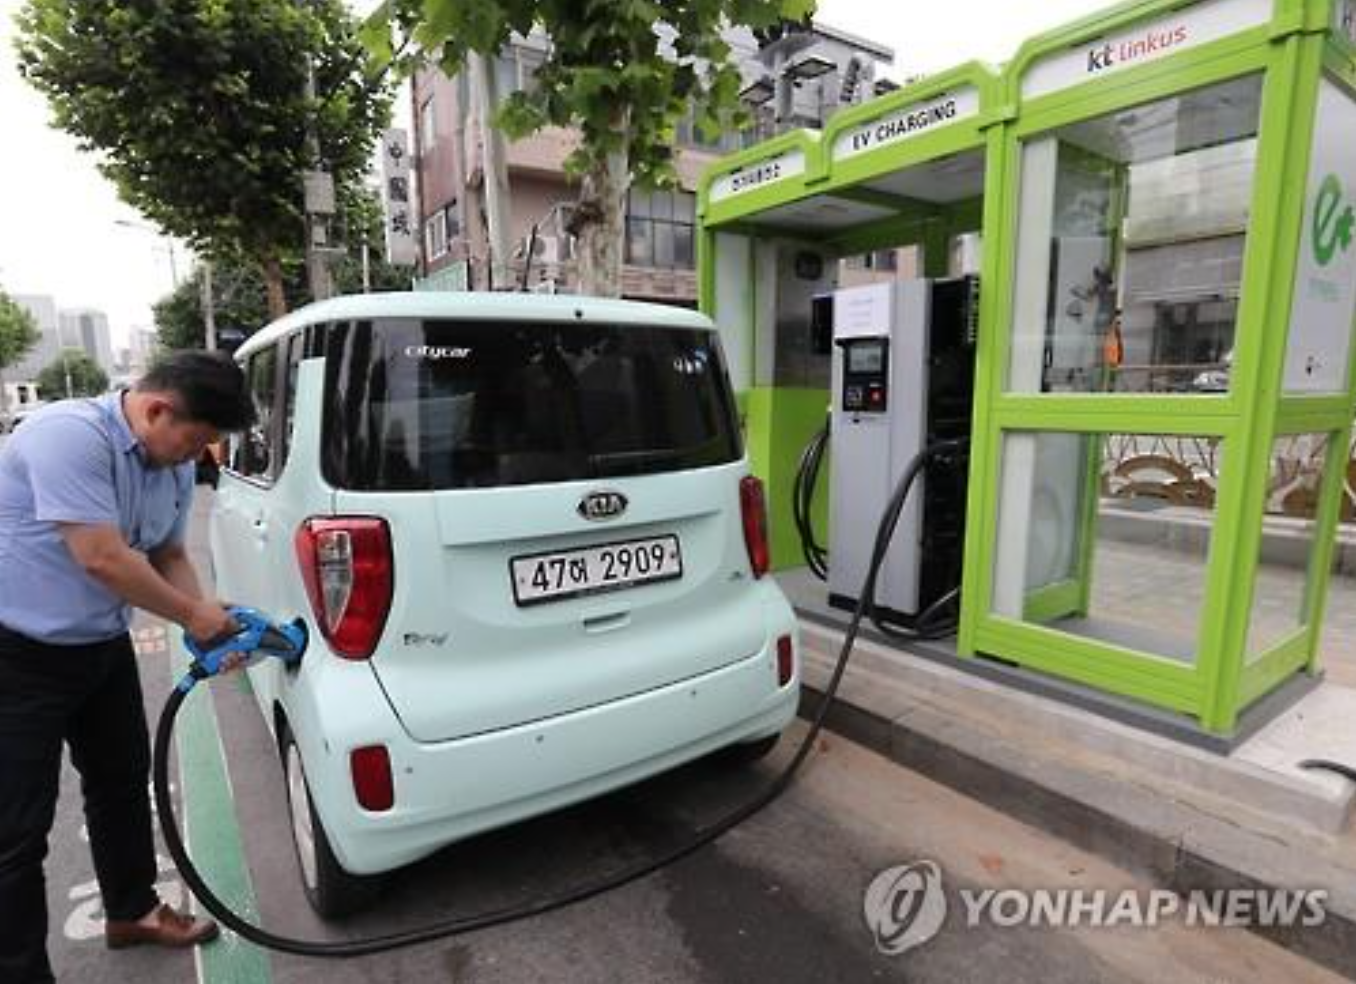 S. Korea to Invest 200 Bln Won This Year to Expand EV Charging Infrastructure